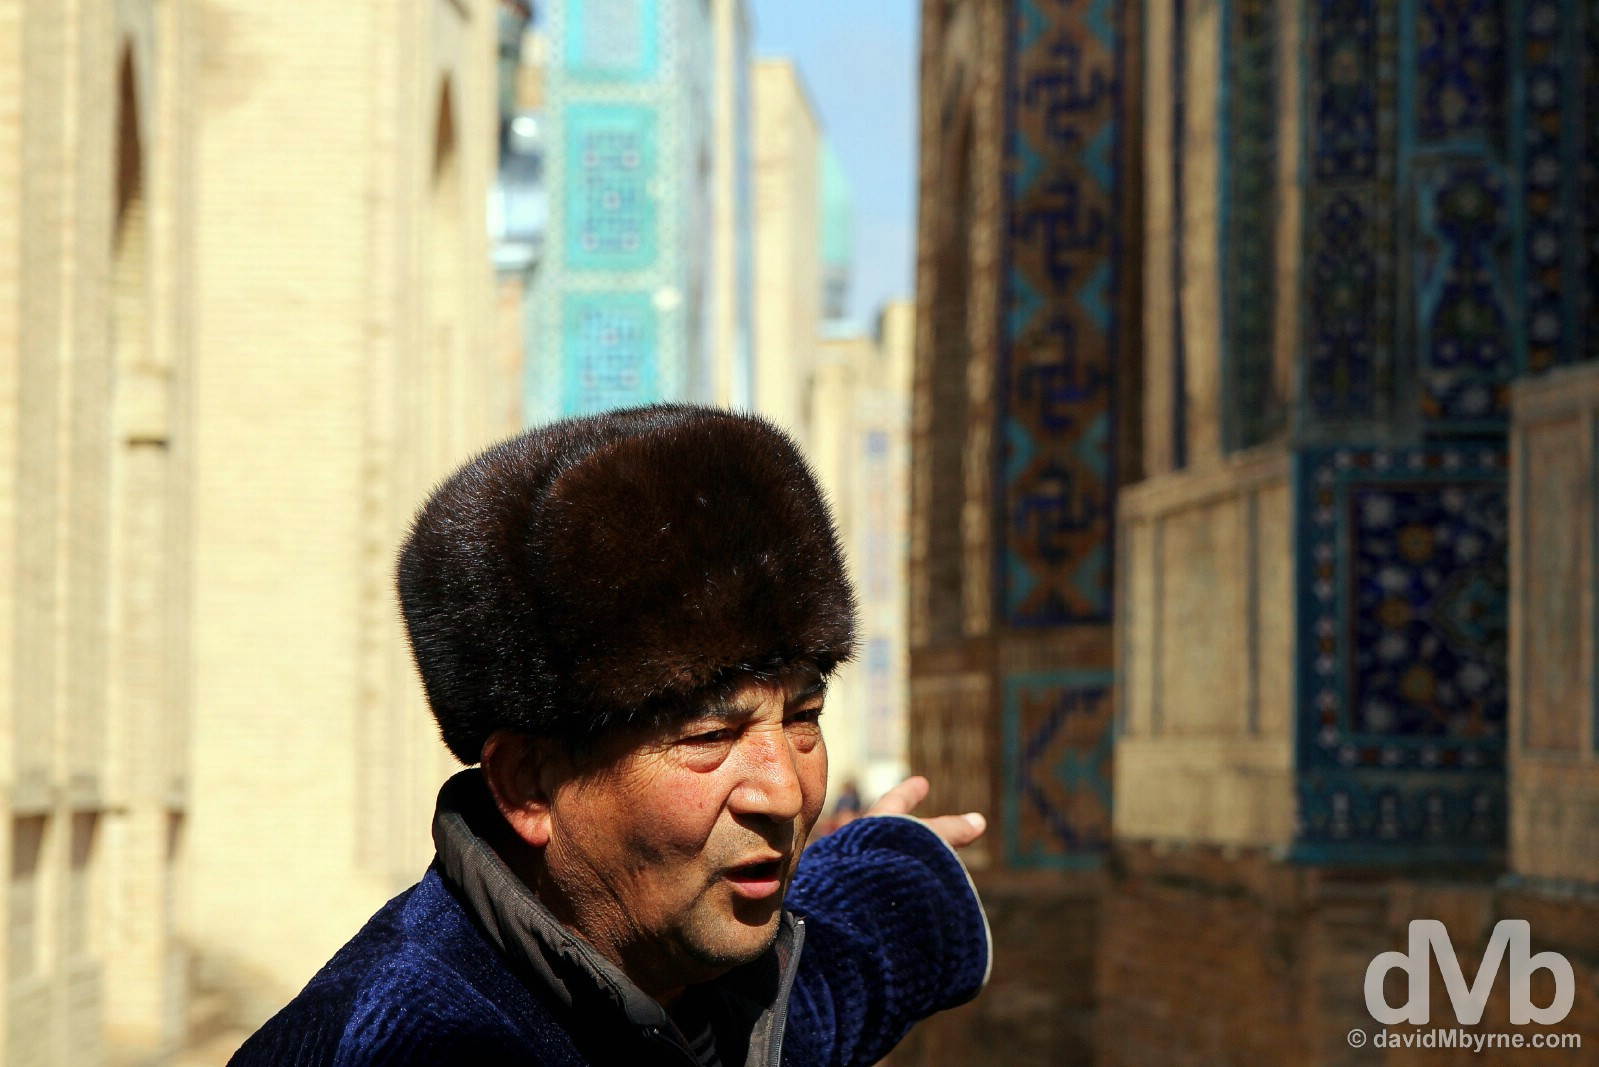 Pointing out detail at the Shah-i-Zinda, the Avenue of Mausoleums, in Samarkand, Uzbekistan. March 8, 2015.